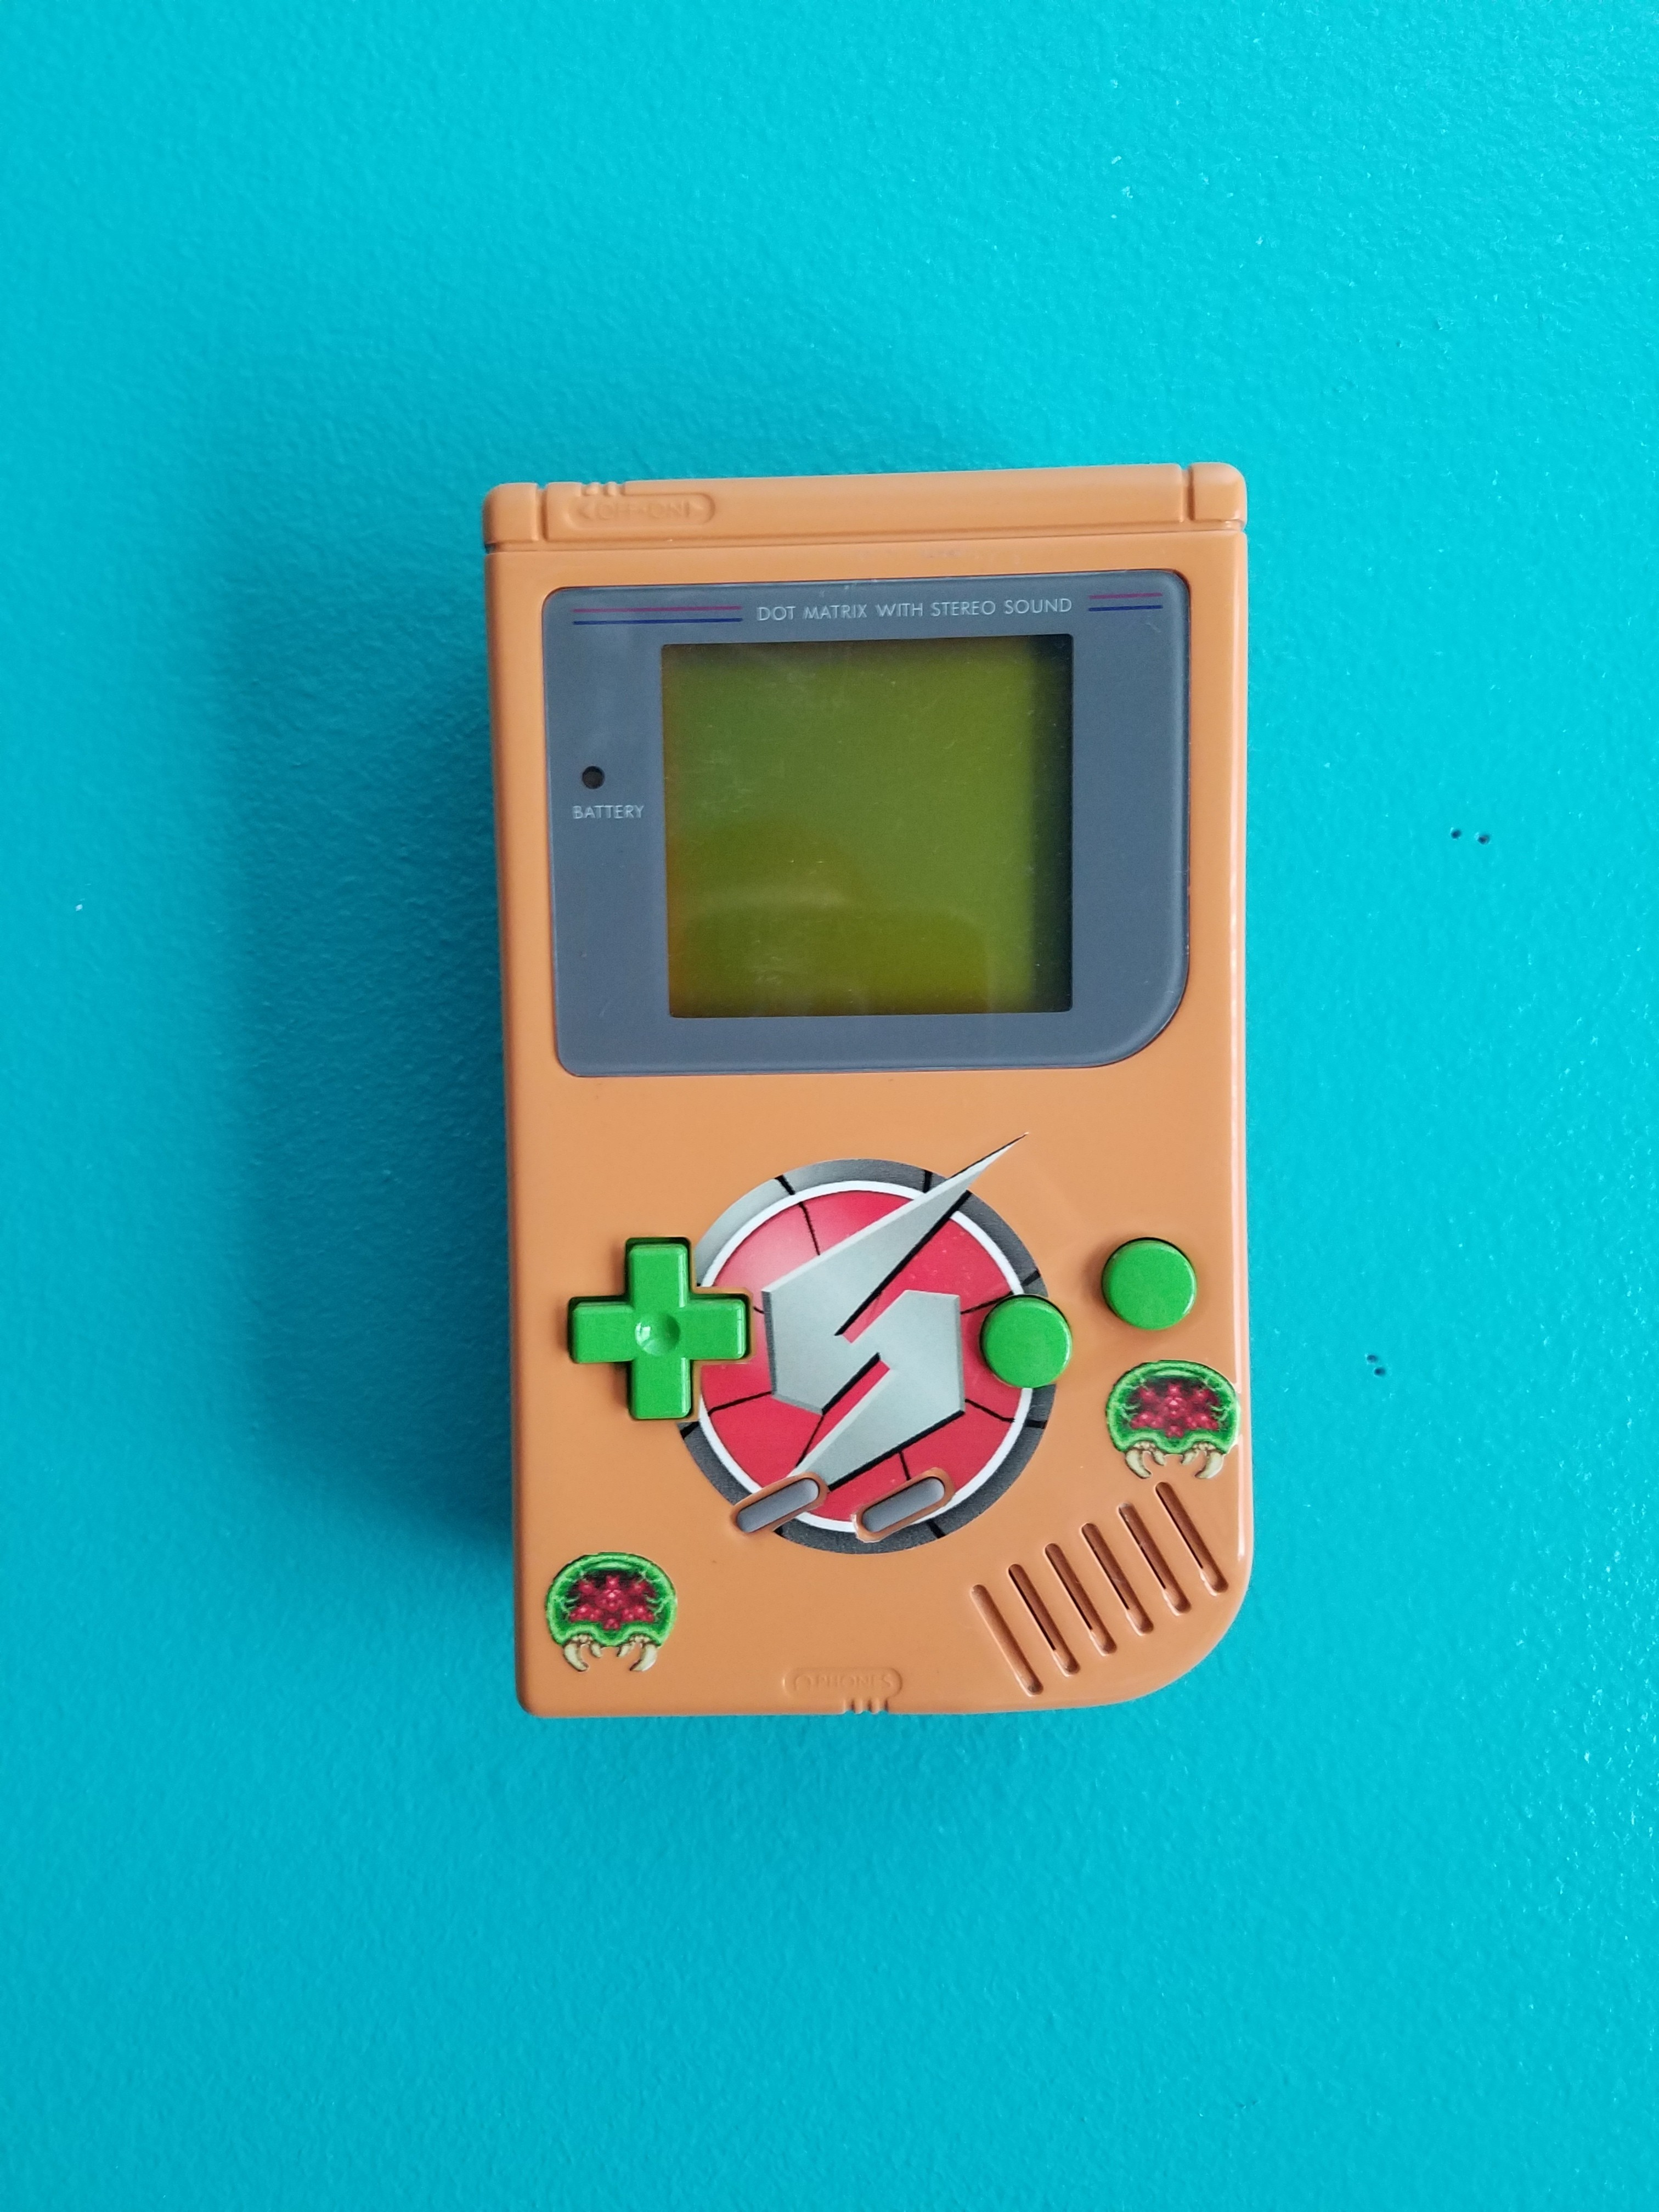 20190111_130913.jpg Download free STL file Gameboy Battery Cover Wall Mount • Design to 3D print, MakeandModify